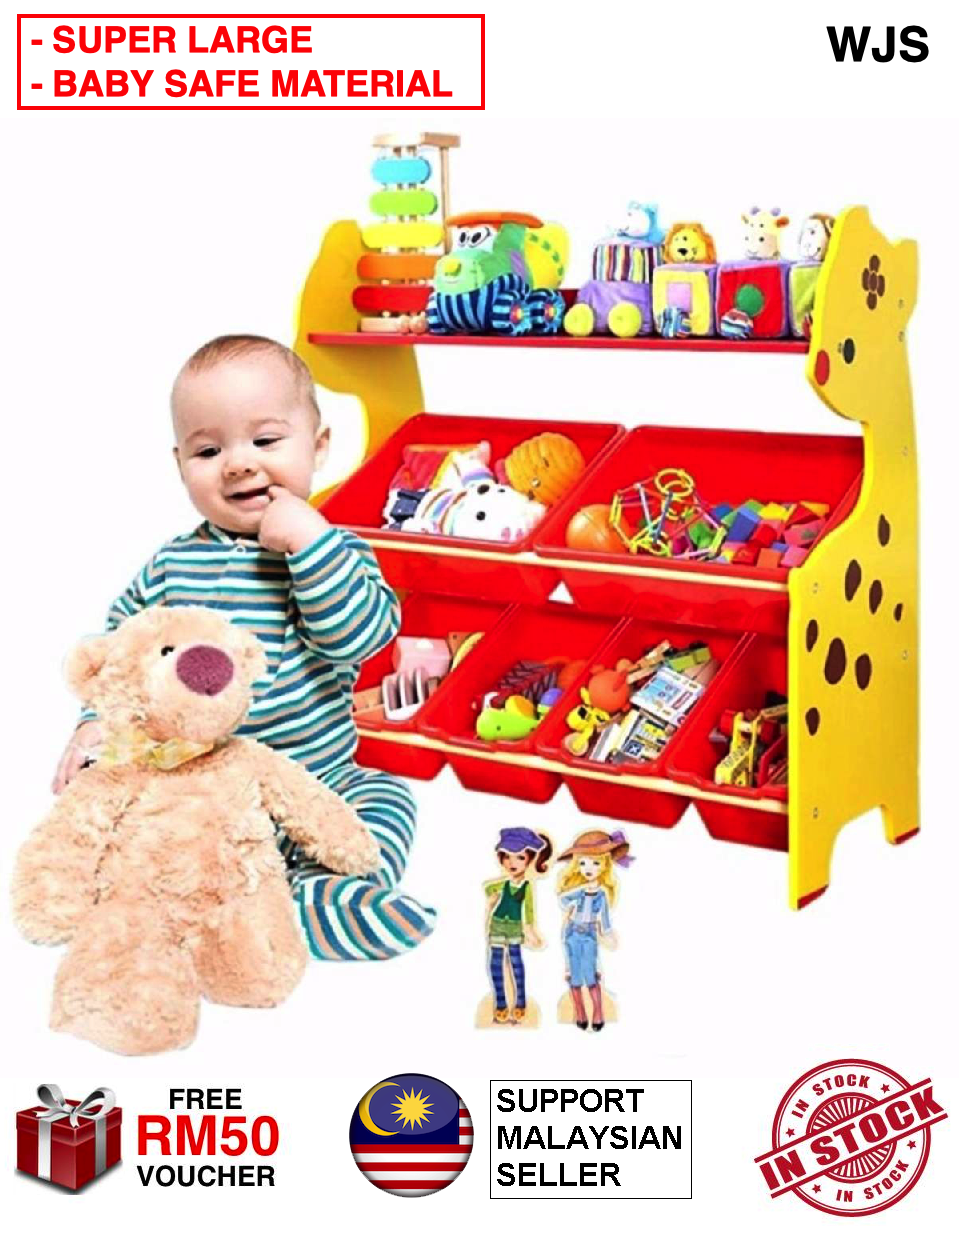 (FREE 6 BASKETS) WJS Genuine OnShine Kids Premium 3 Tiers Toy Organizer Toy Organiser Drawer Cupboard Wardrobe Toy Storage Toy Basket with 6 Colourful Storage Bin Giraffe RED [FREE RM 50 VOUCHER]